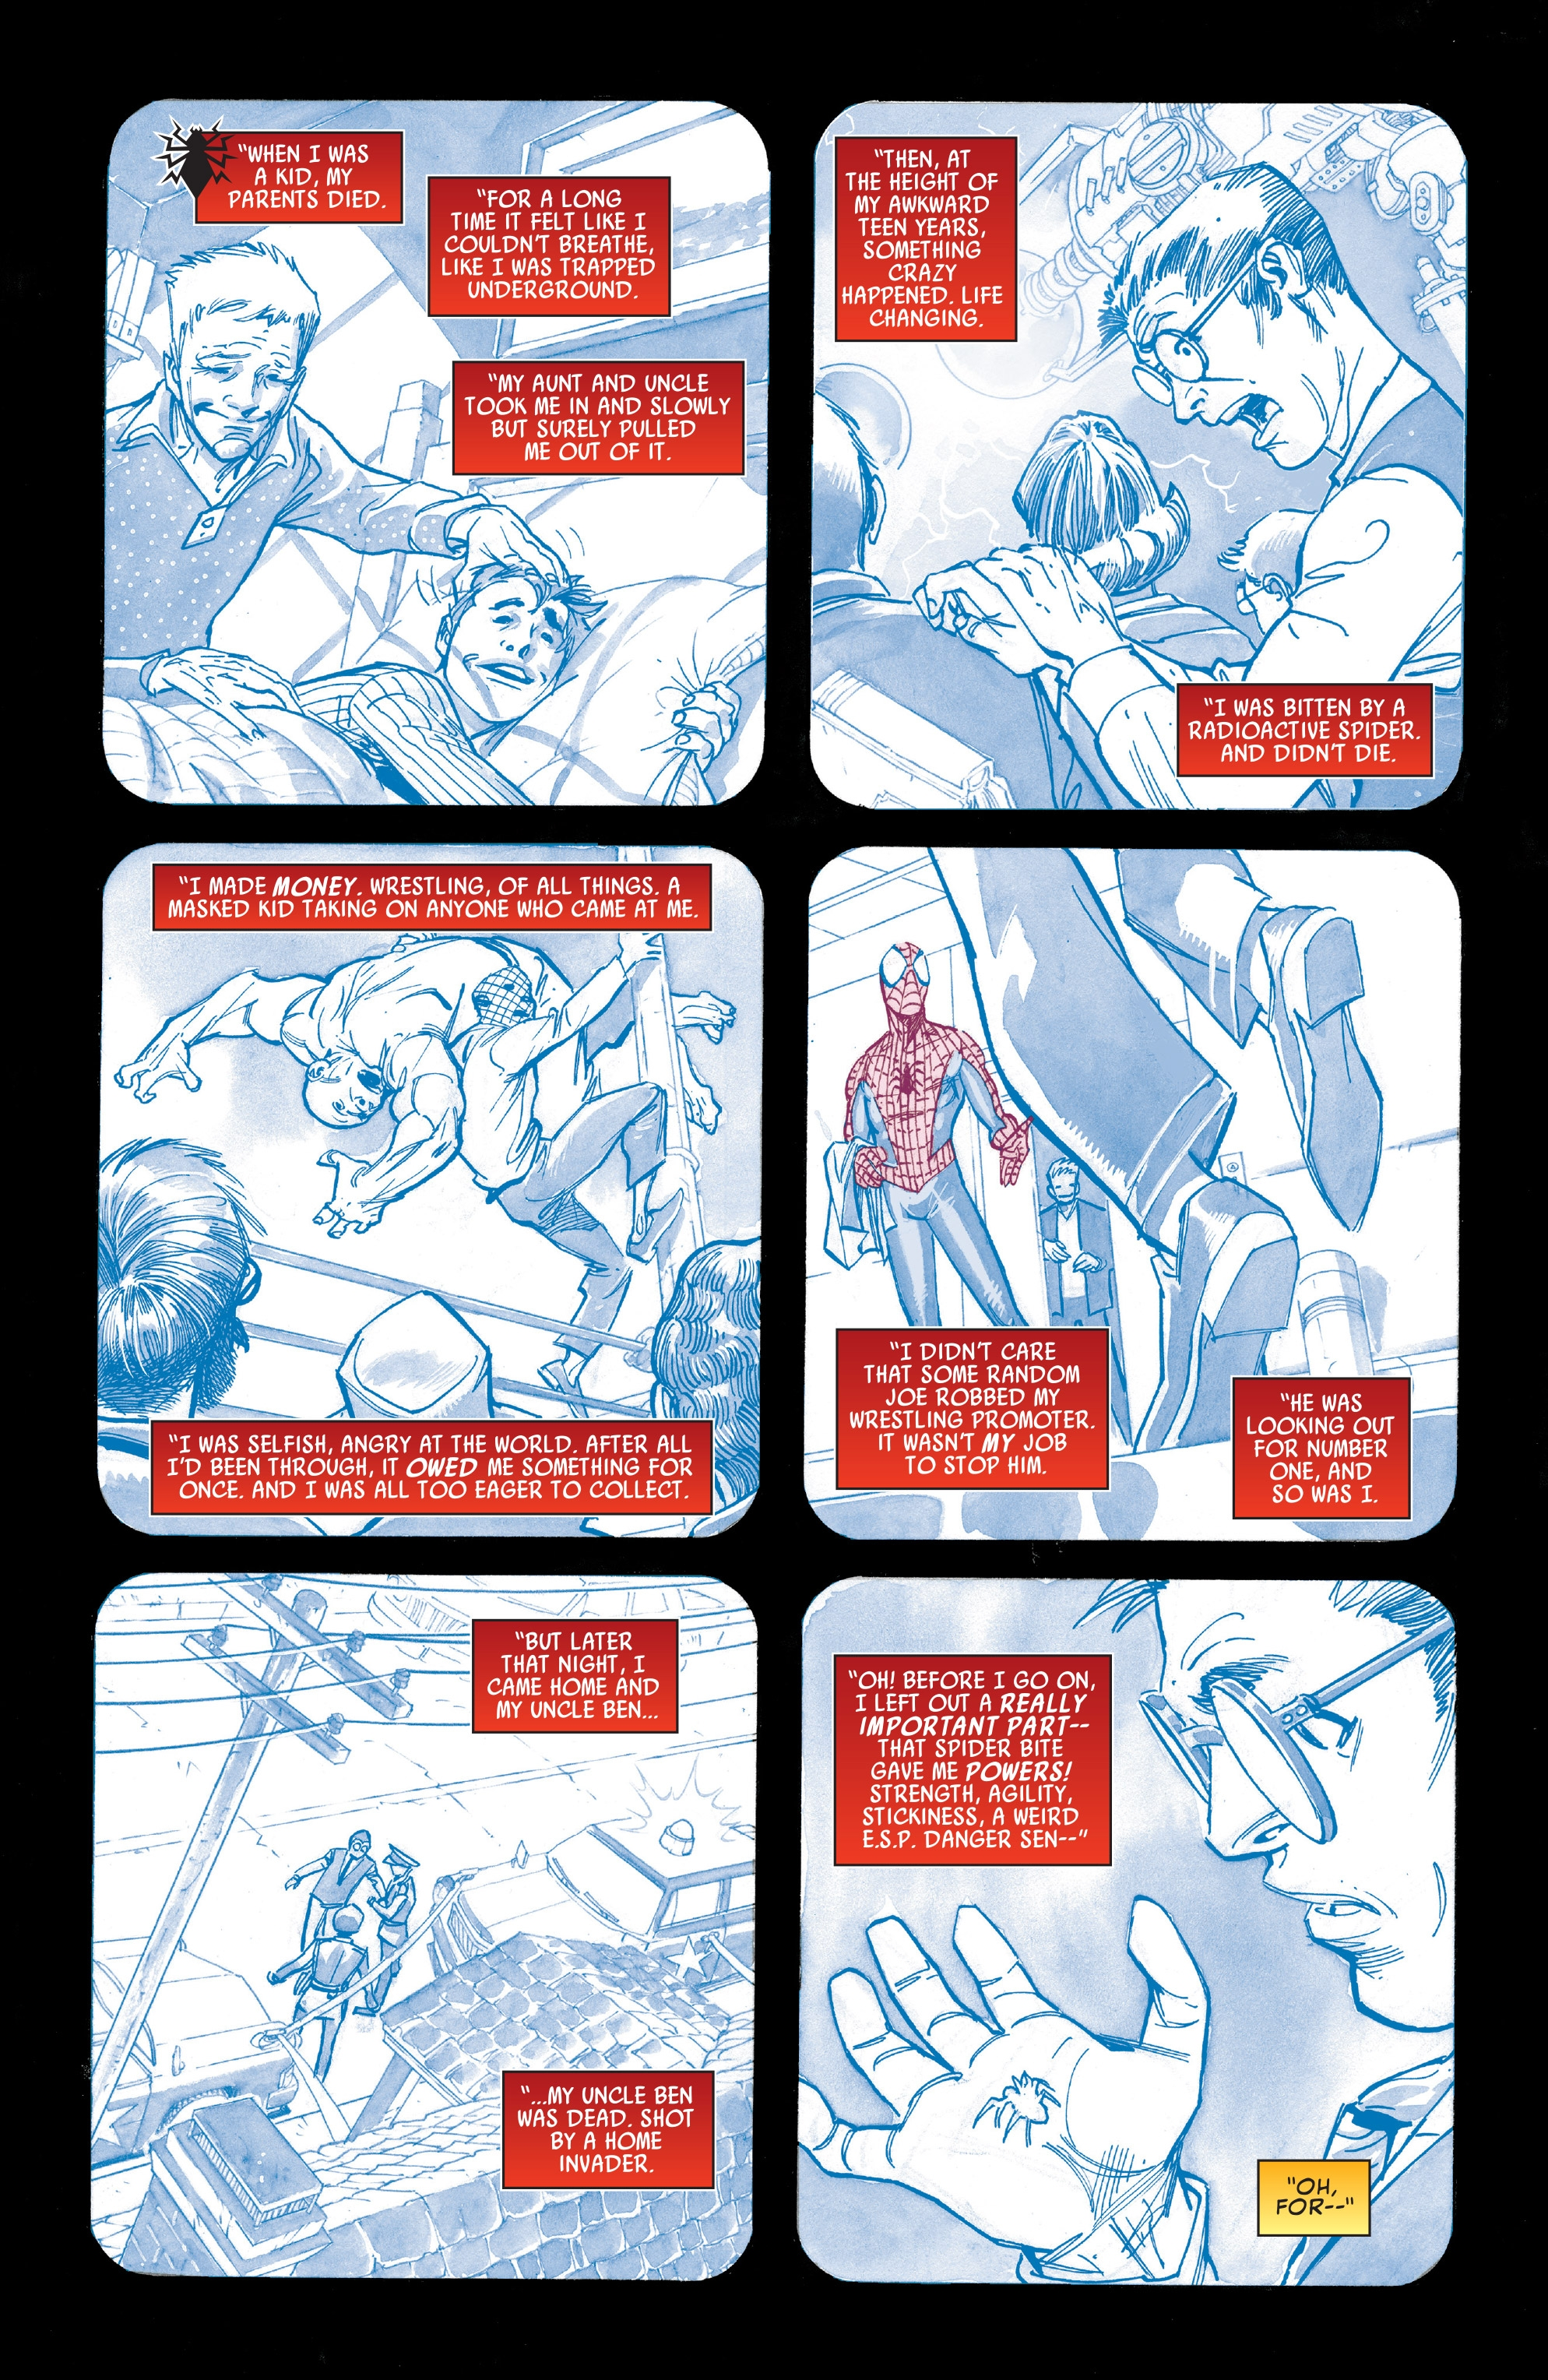 Read online Peter Parker: The Spectacular Spider-Man comic -  Issue #1 - 2